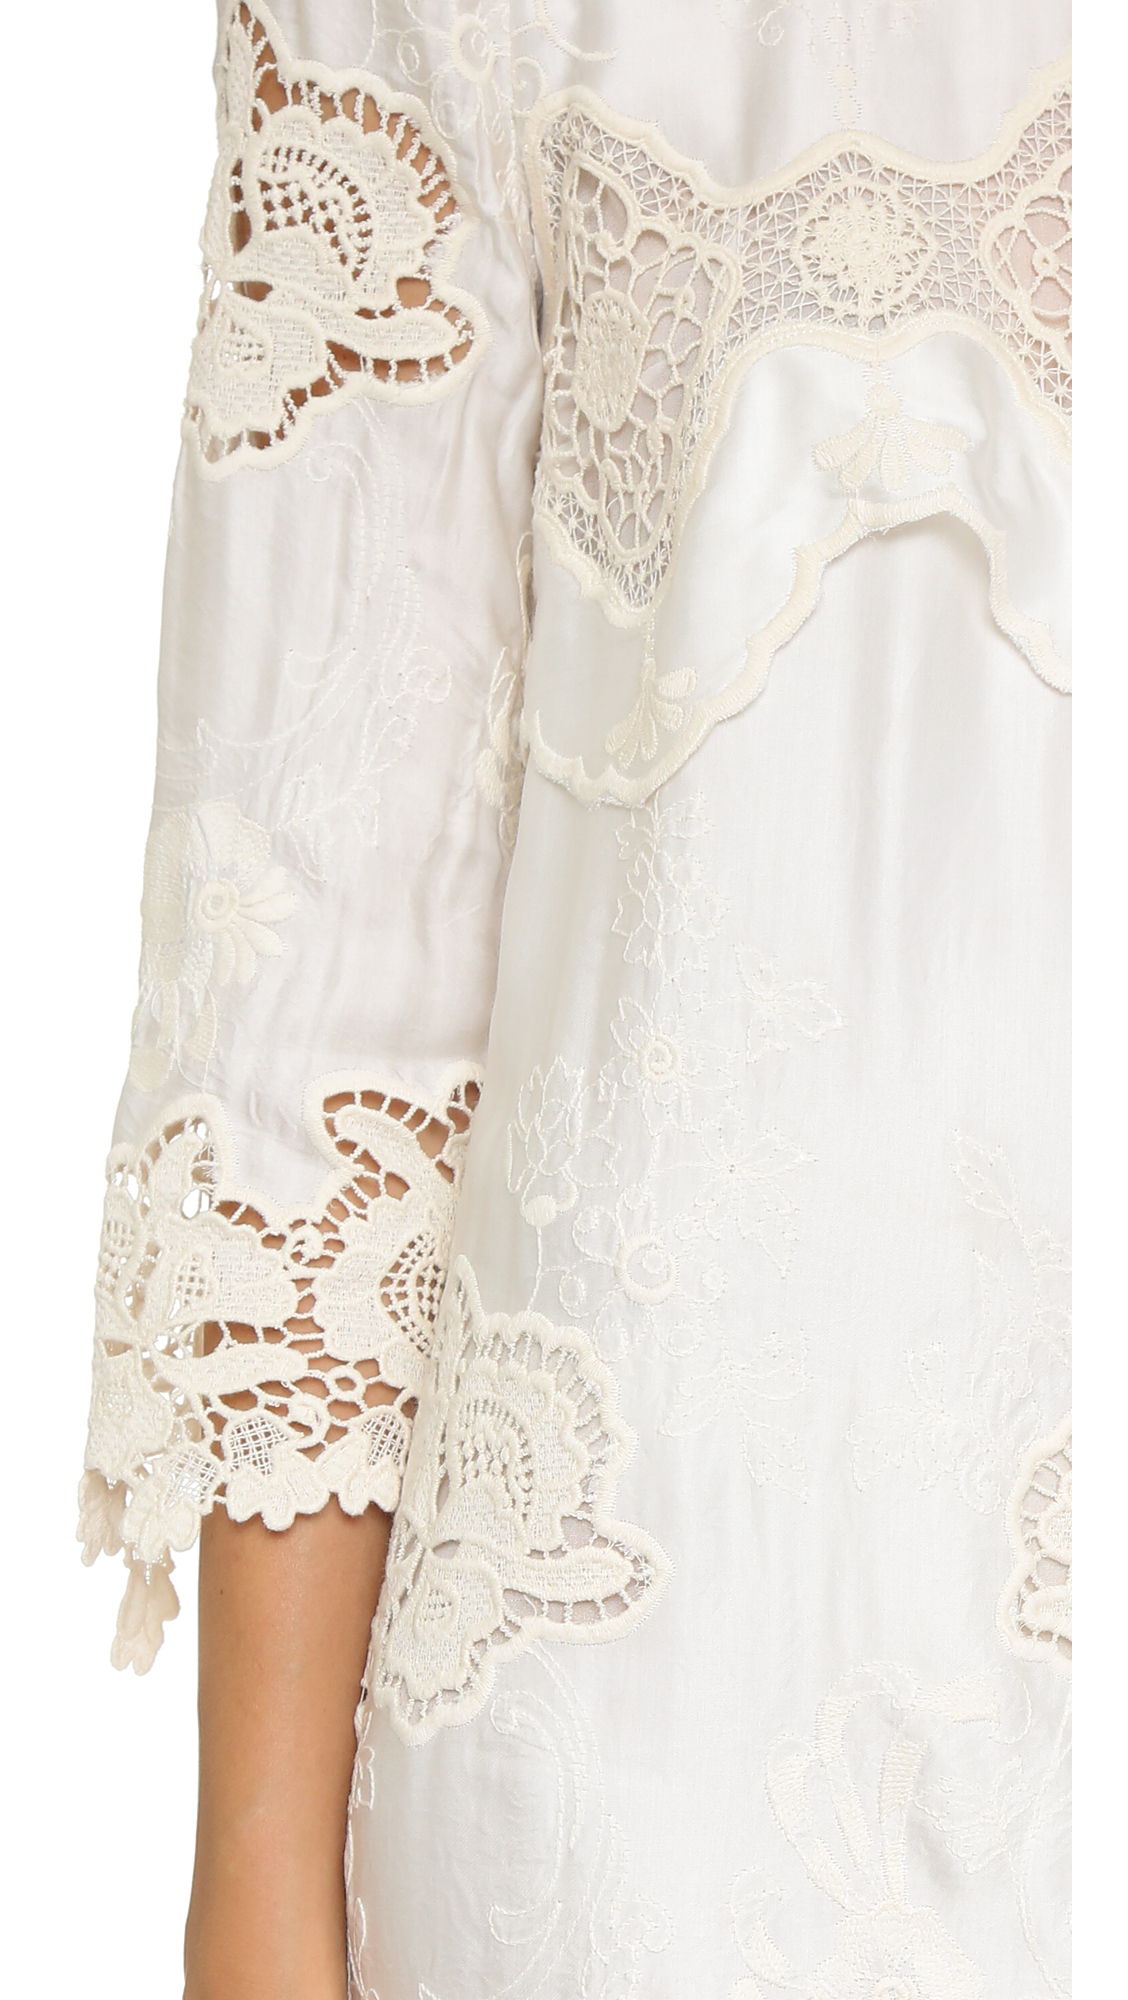 Lyst - Just Cavalli Lace Shift Dress - Off White